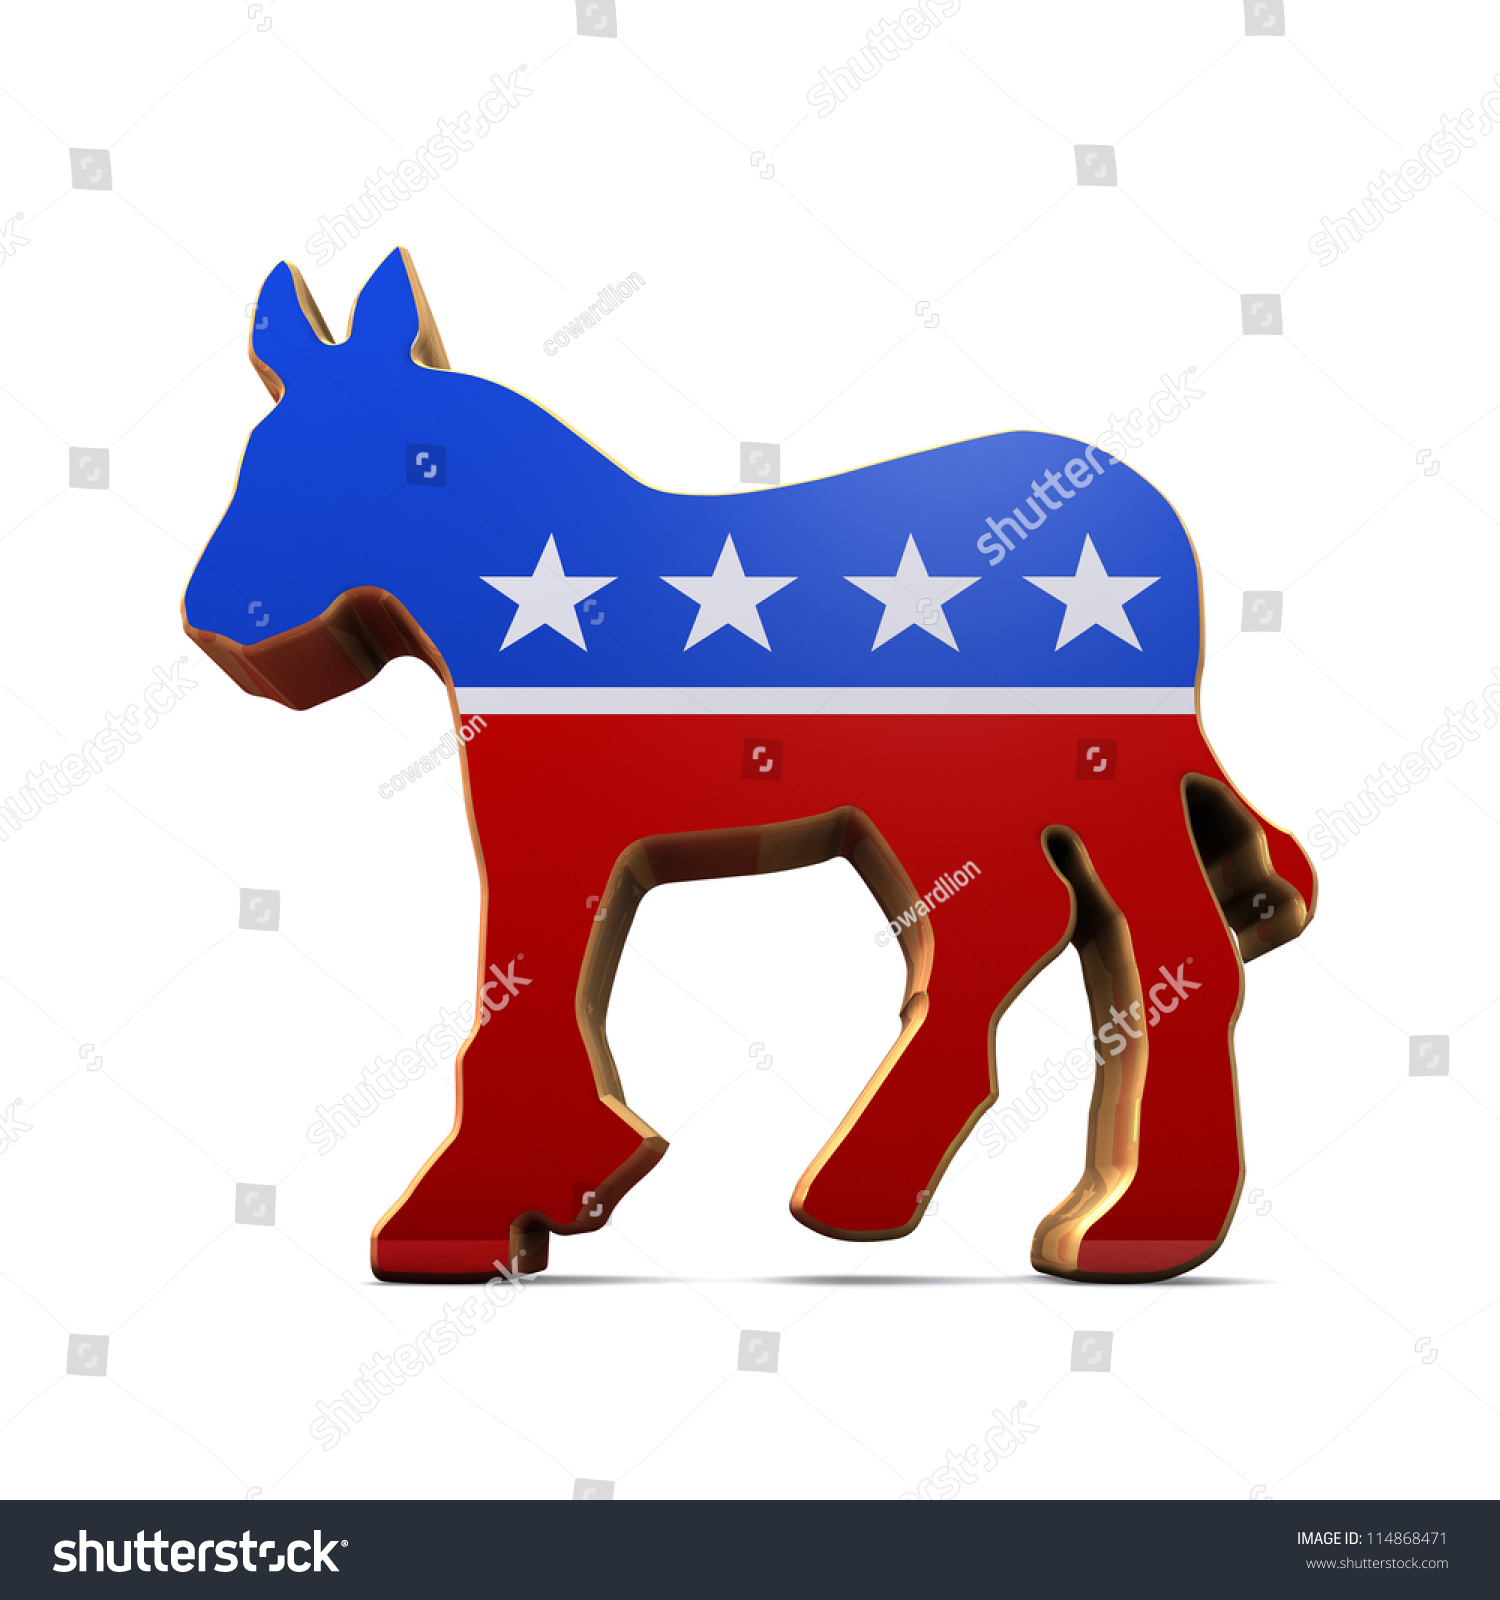 Isolated democrat party symbol stock illustration 114868471 isolated democrat party symbol biocorpaavc Image collections